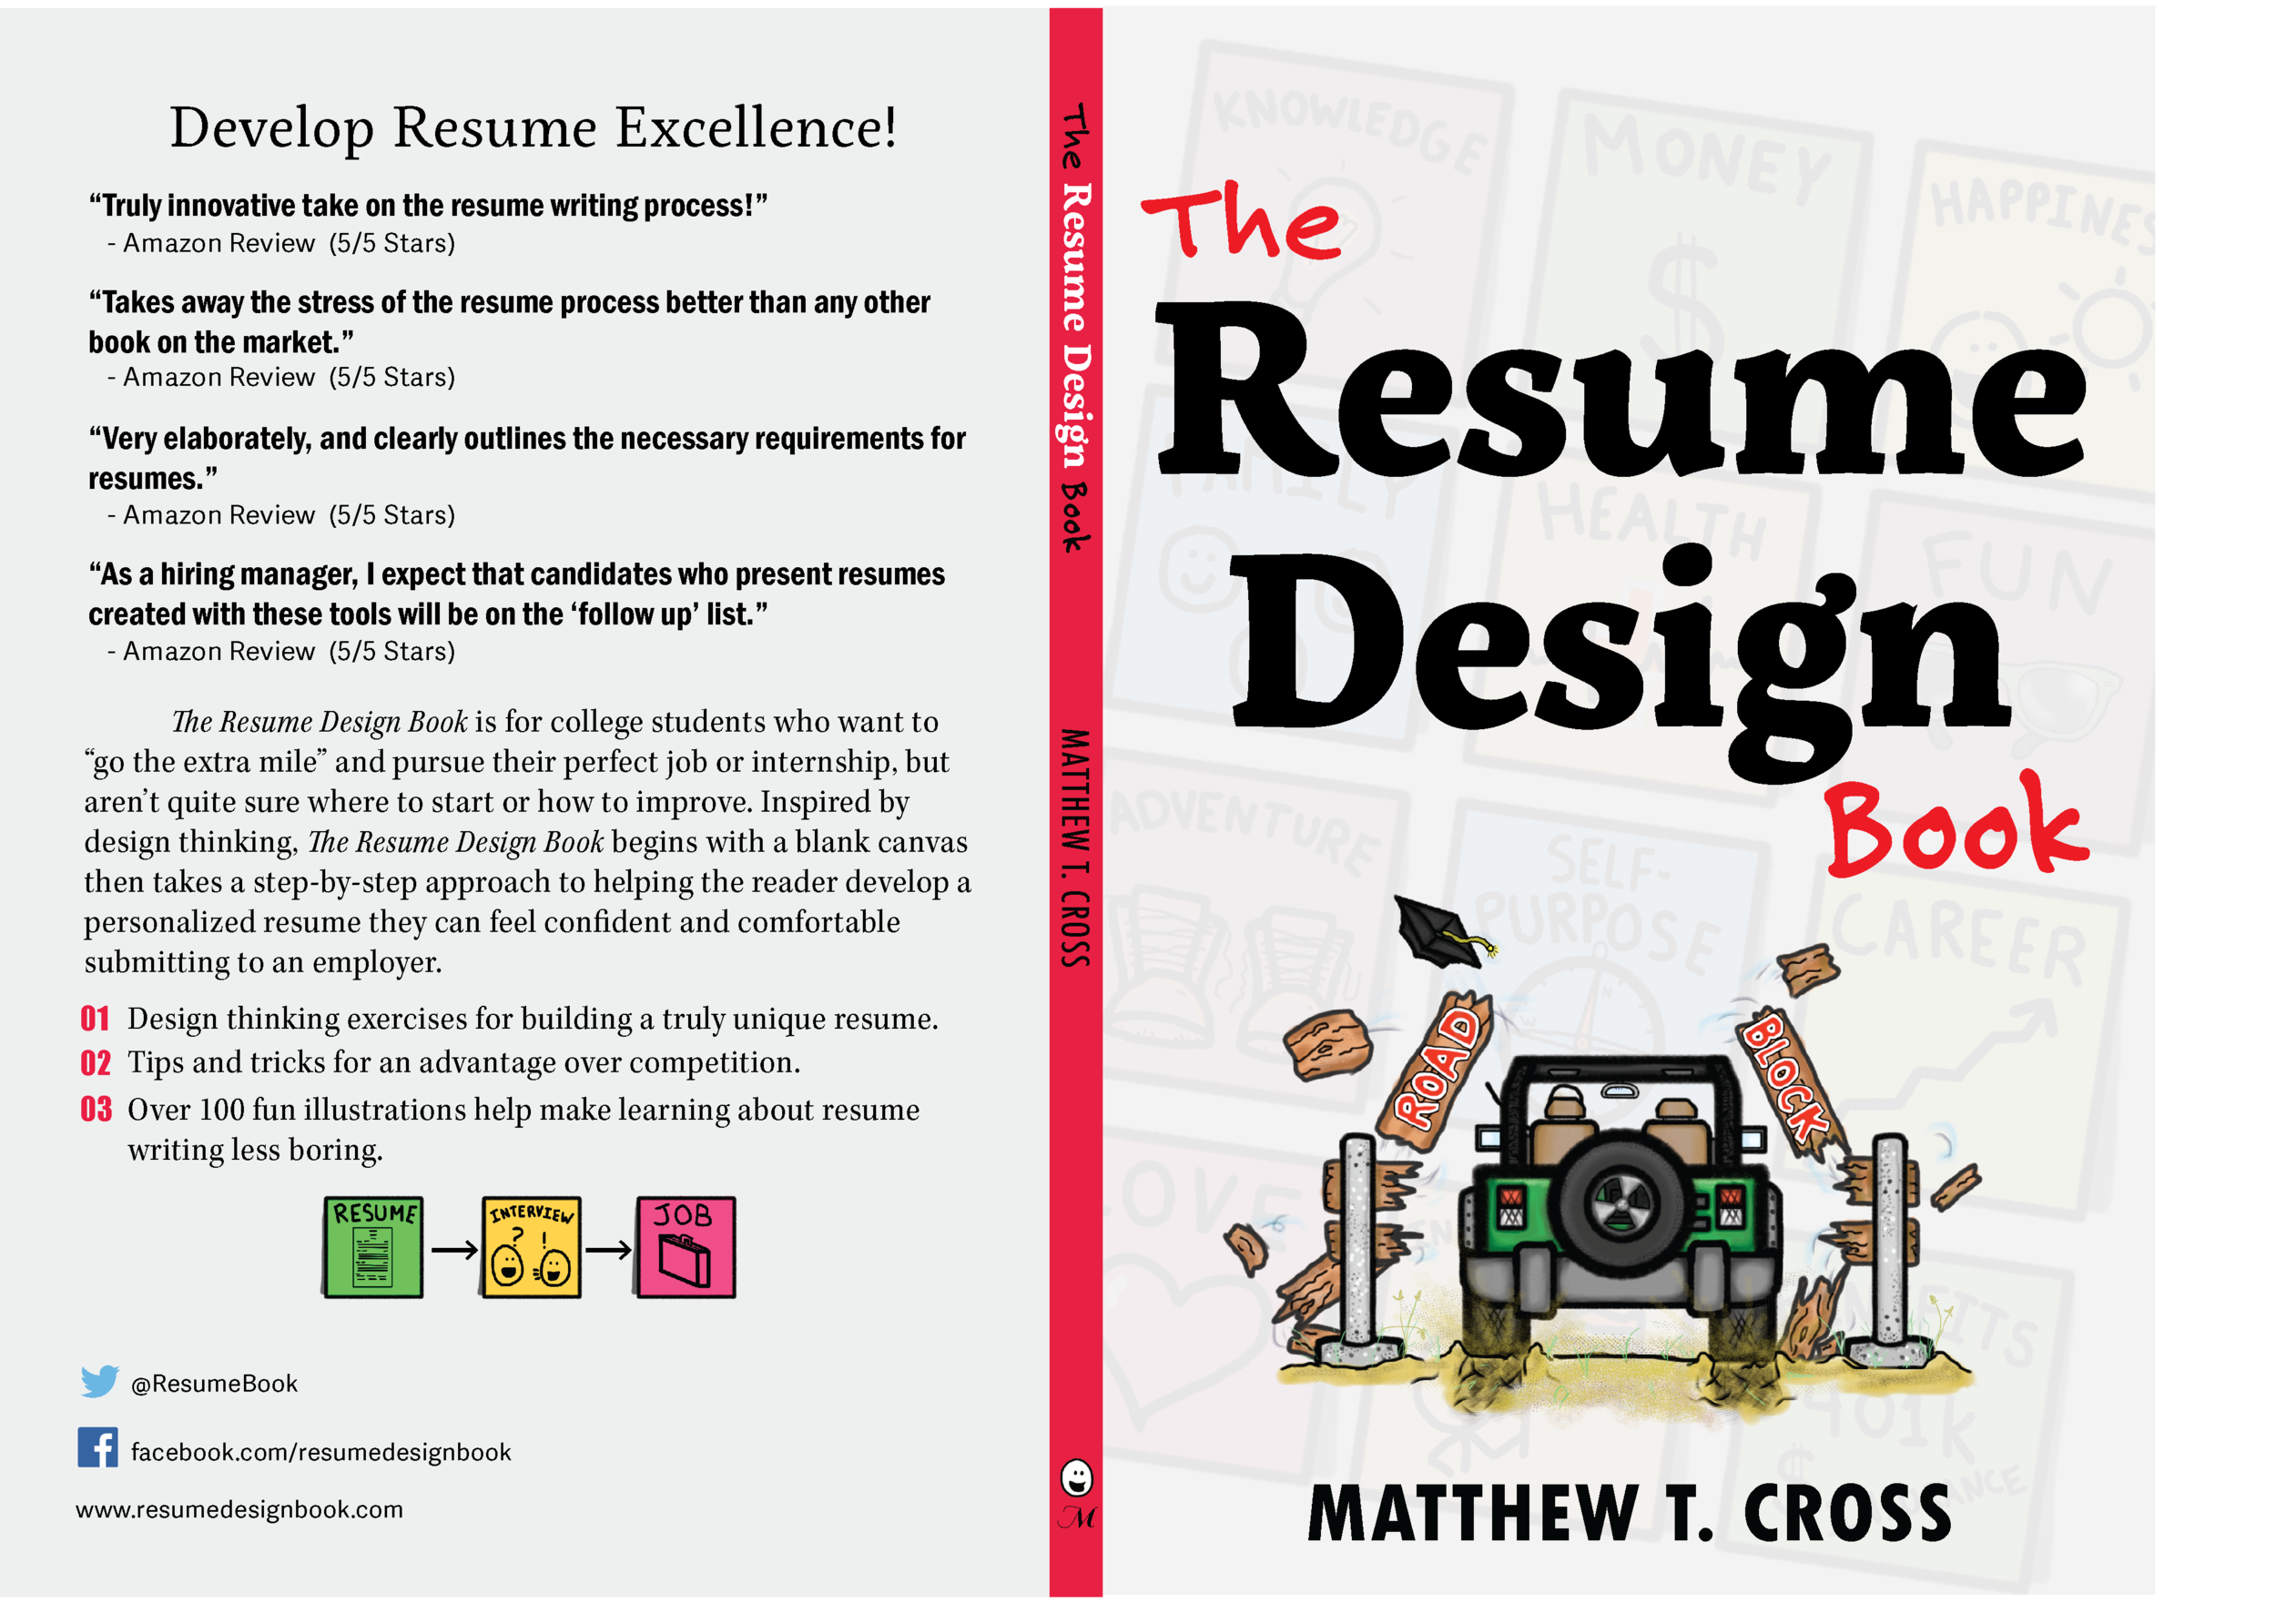 the resume design book cover 2nd edition.png